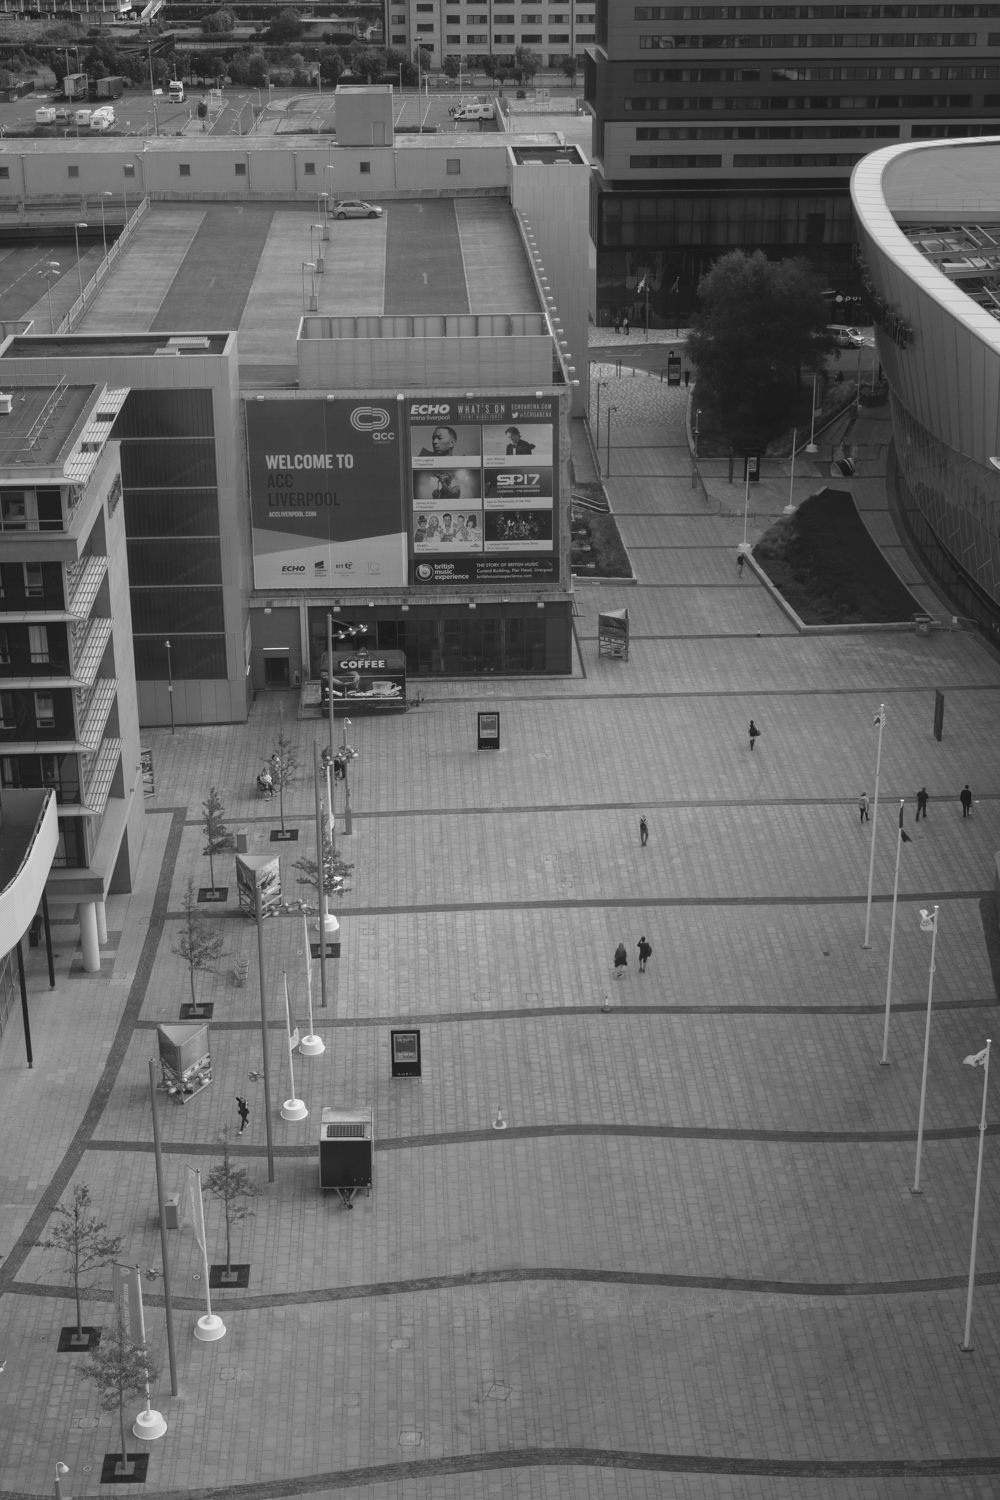 Looking down at a rectangular plaza in front of the Liverpool Echo Arena. Some people are walking along the plaza.